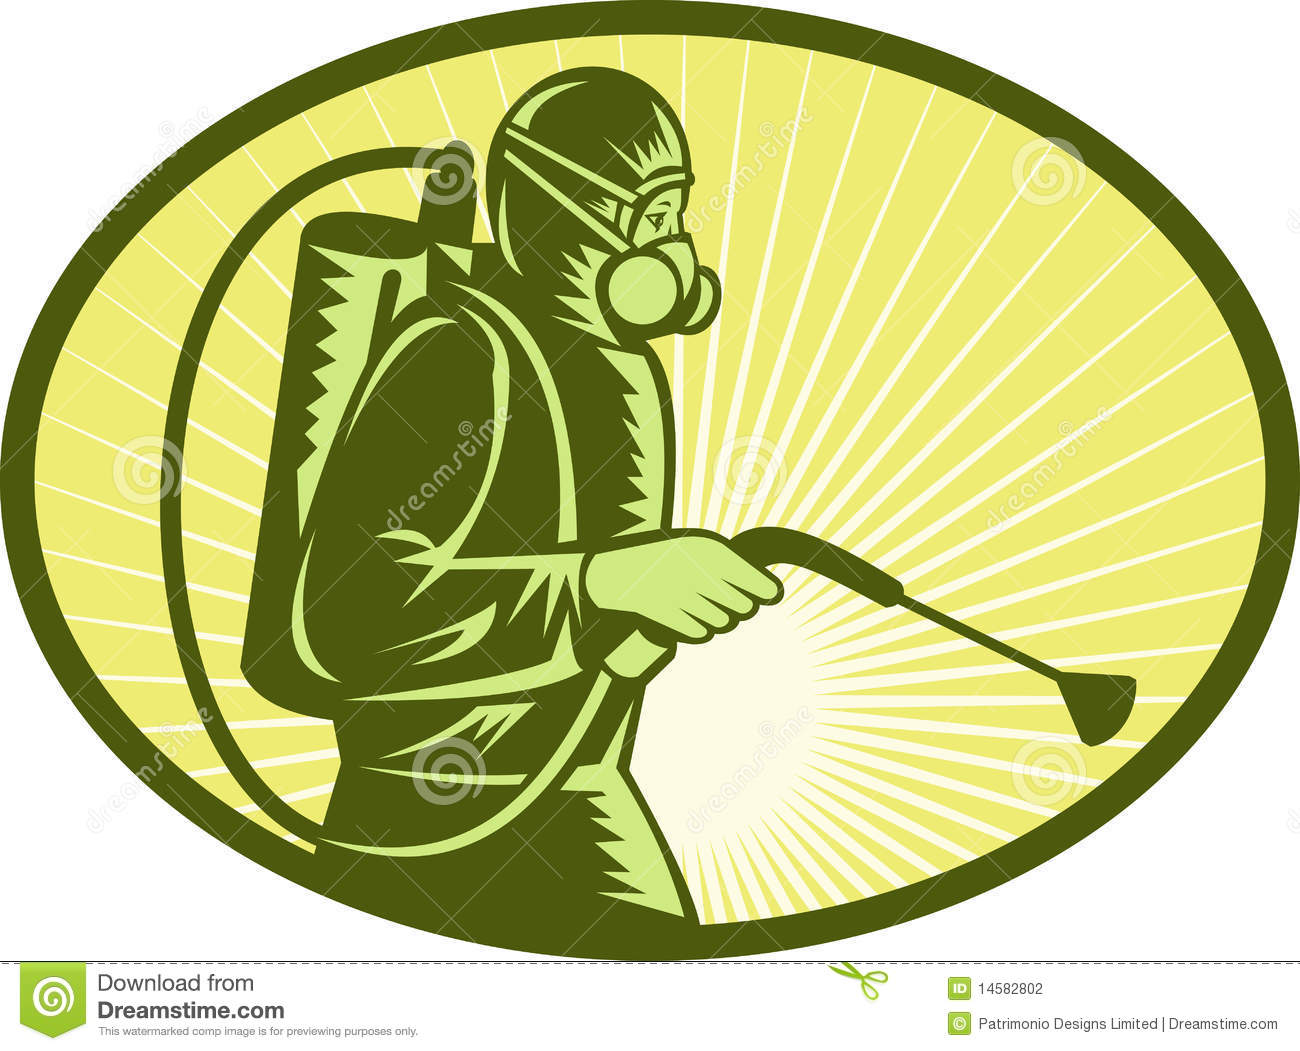 Illustration of a Pest control exterminator worker spraying side view.